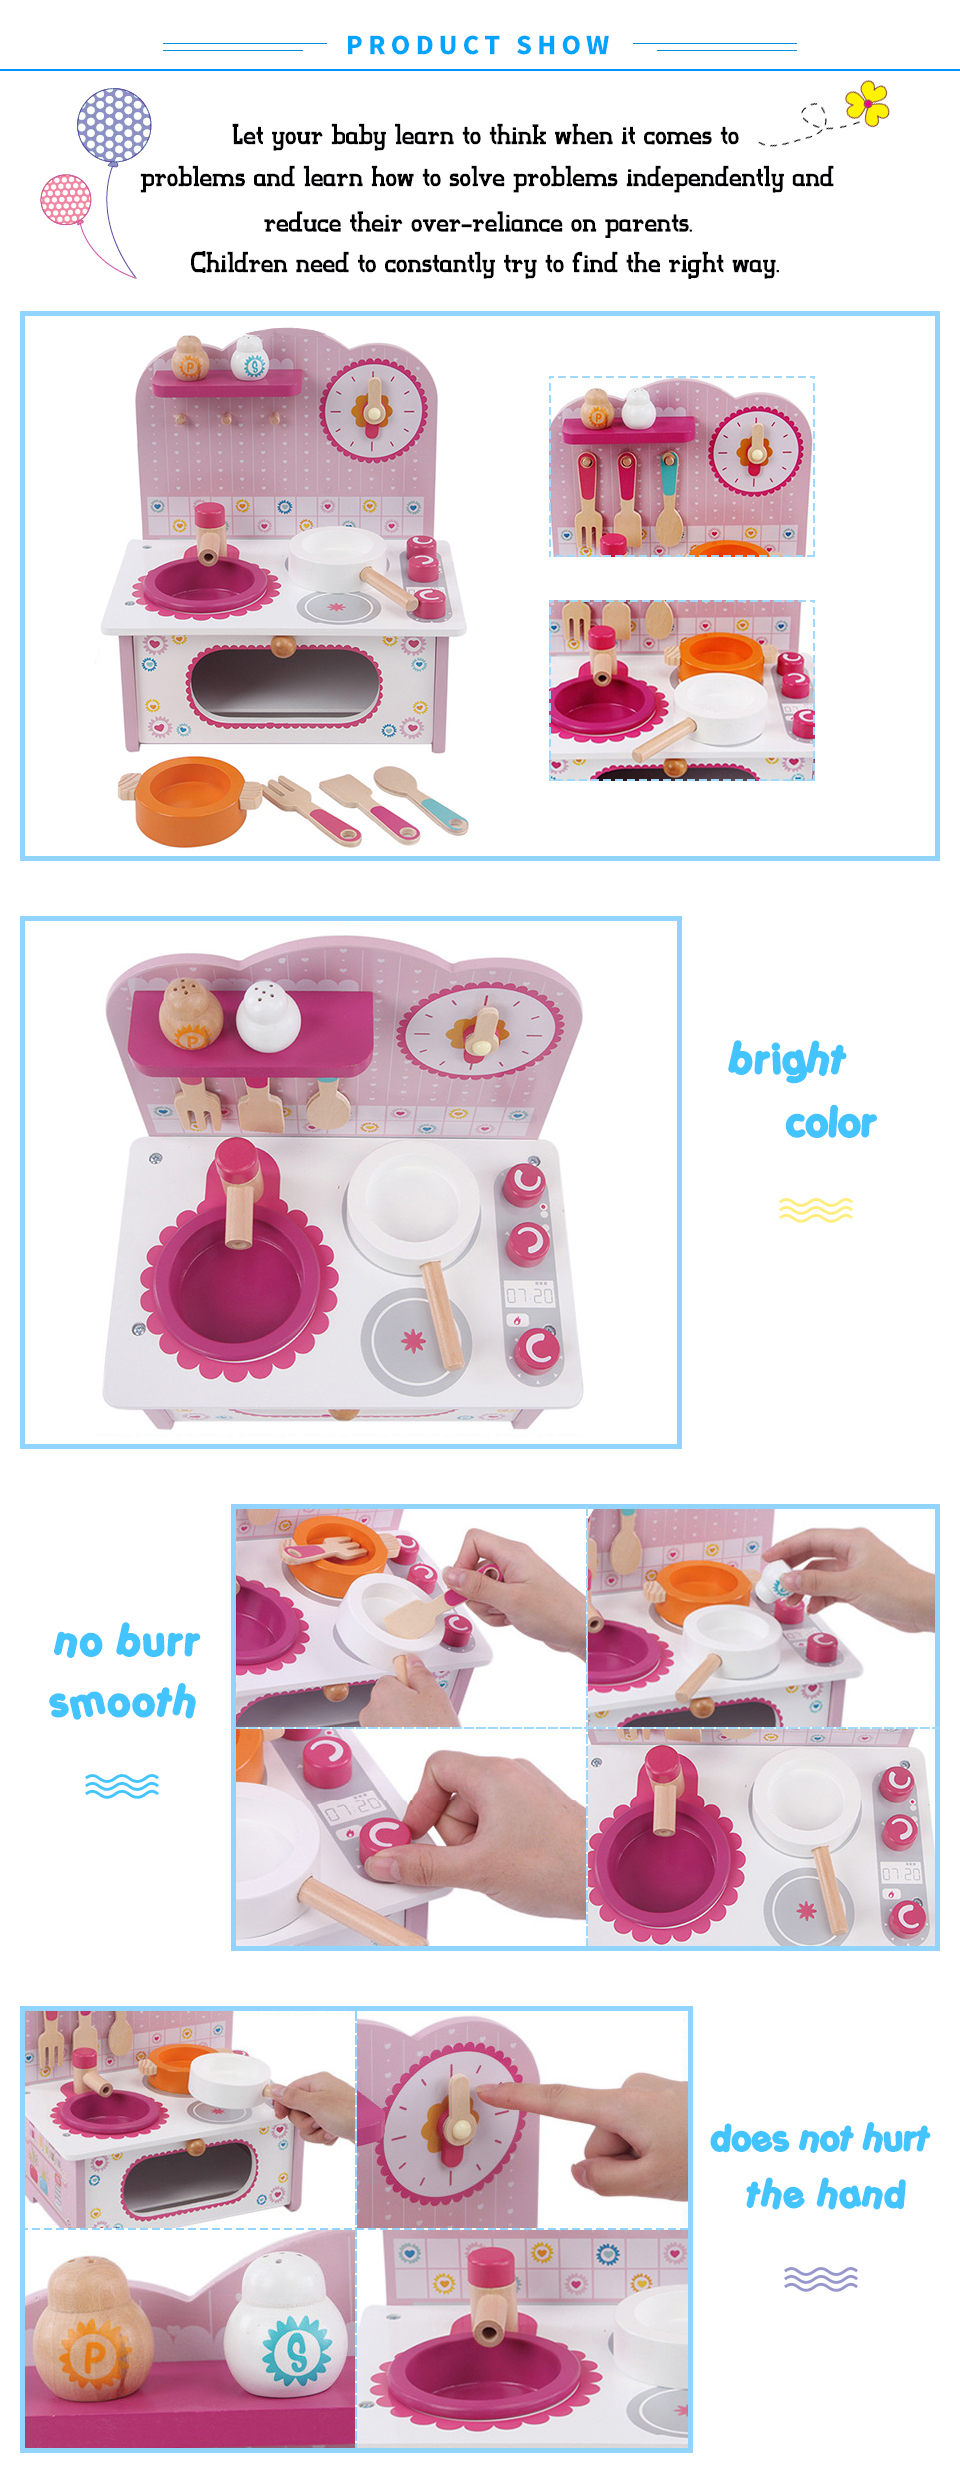 Toys R Us Küchenspielzeug Baby Toys Kid Cooking Set Wooden Kitchen Toy For Children Wooden Play Kitchen Set Pink Stove Gift